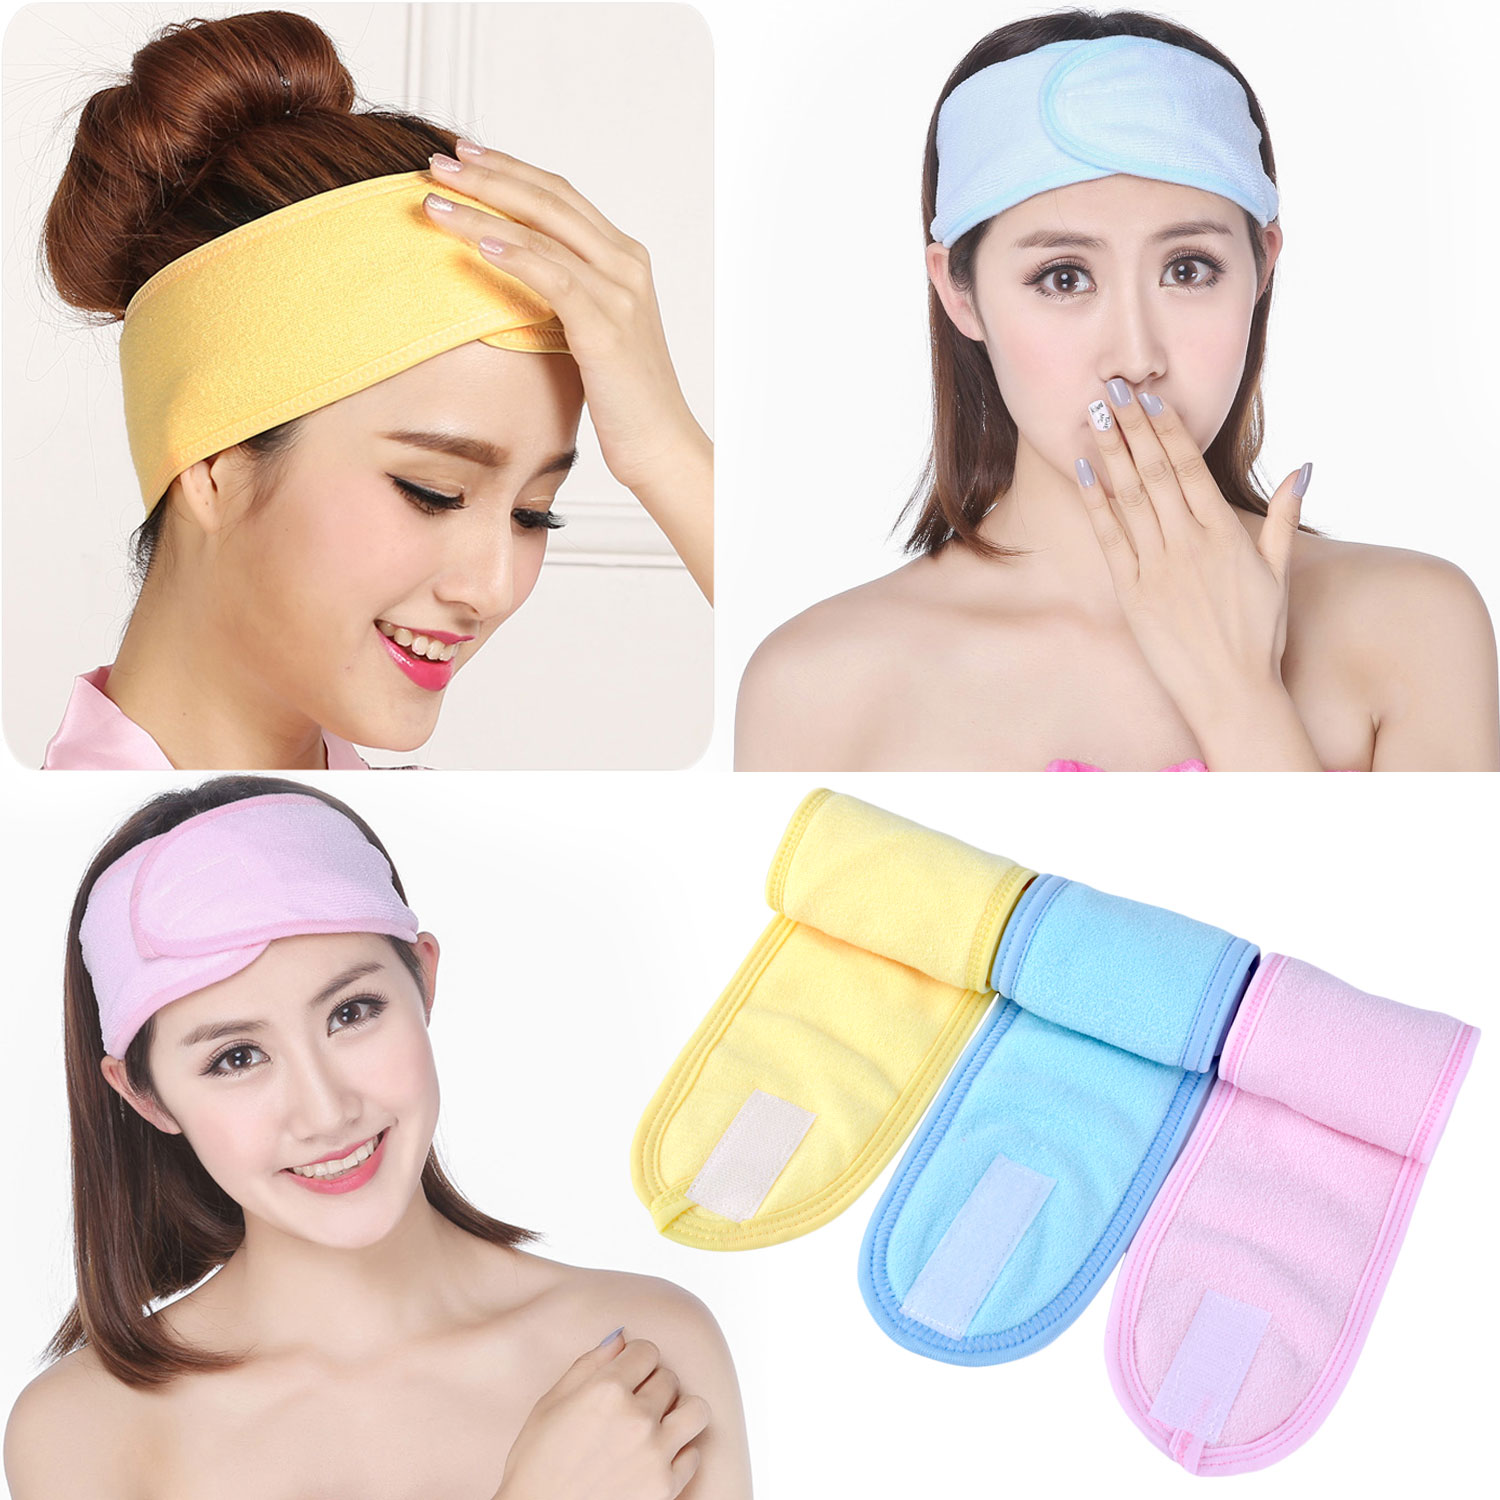 Spa Headbands, Coxeer 3Pcs Womens Facial Headband Elastic Makeup Cosmetic Hair Band Head Wrap for Spa Shower